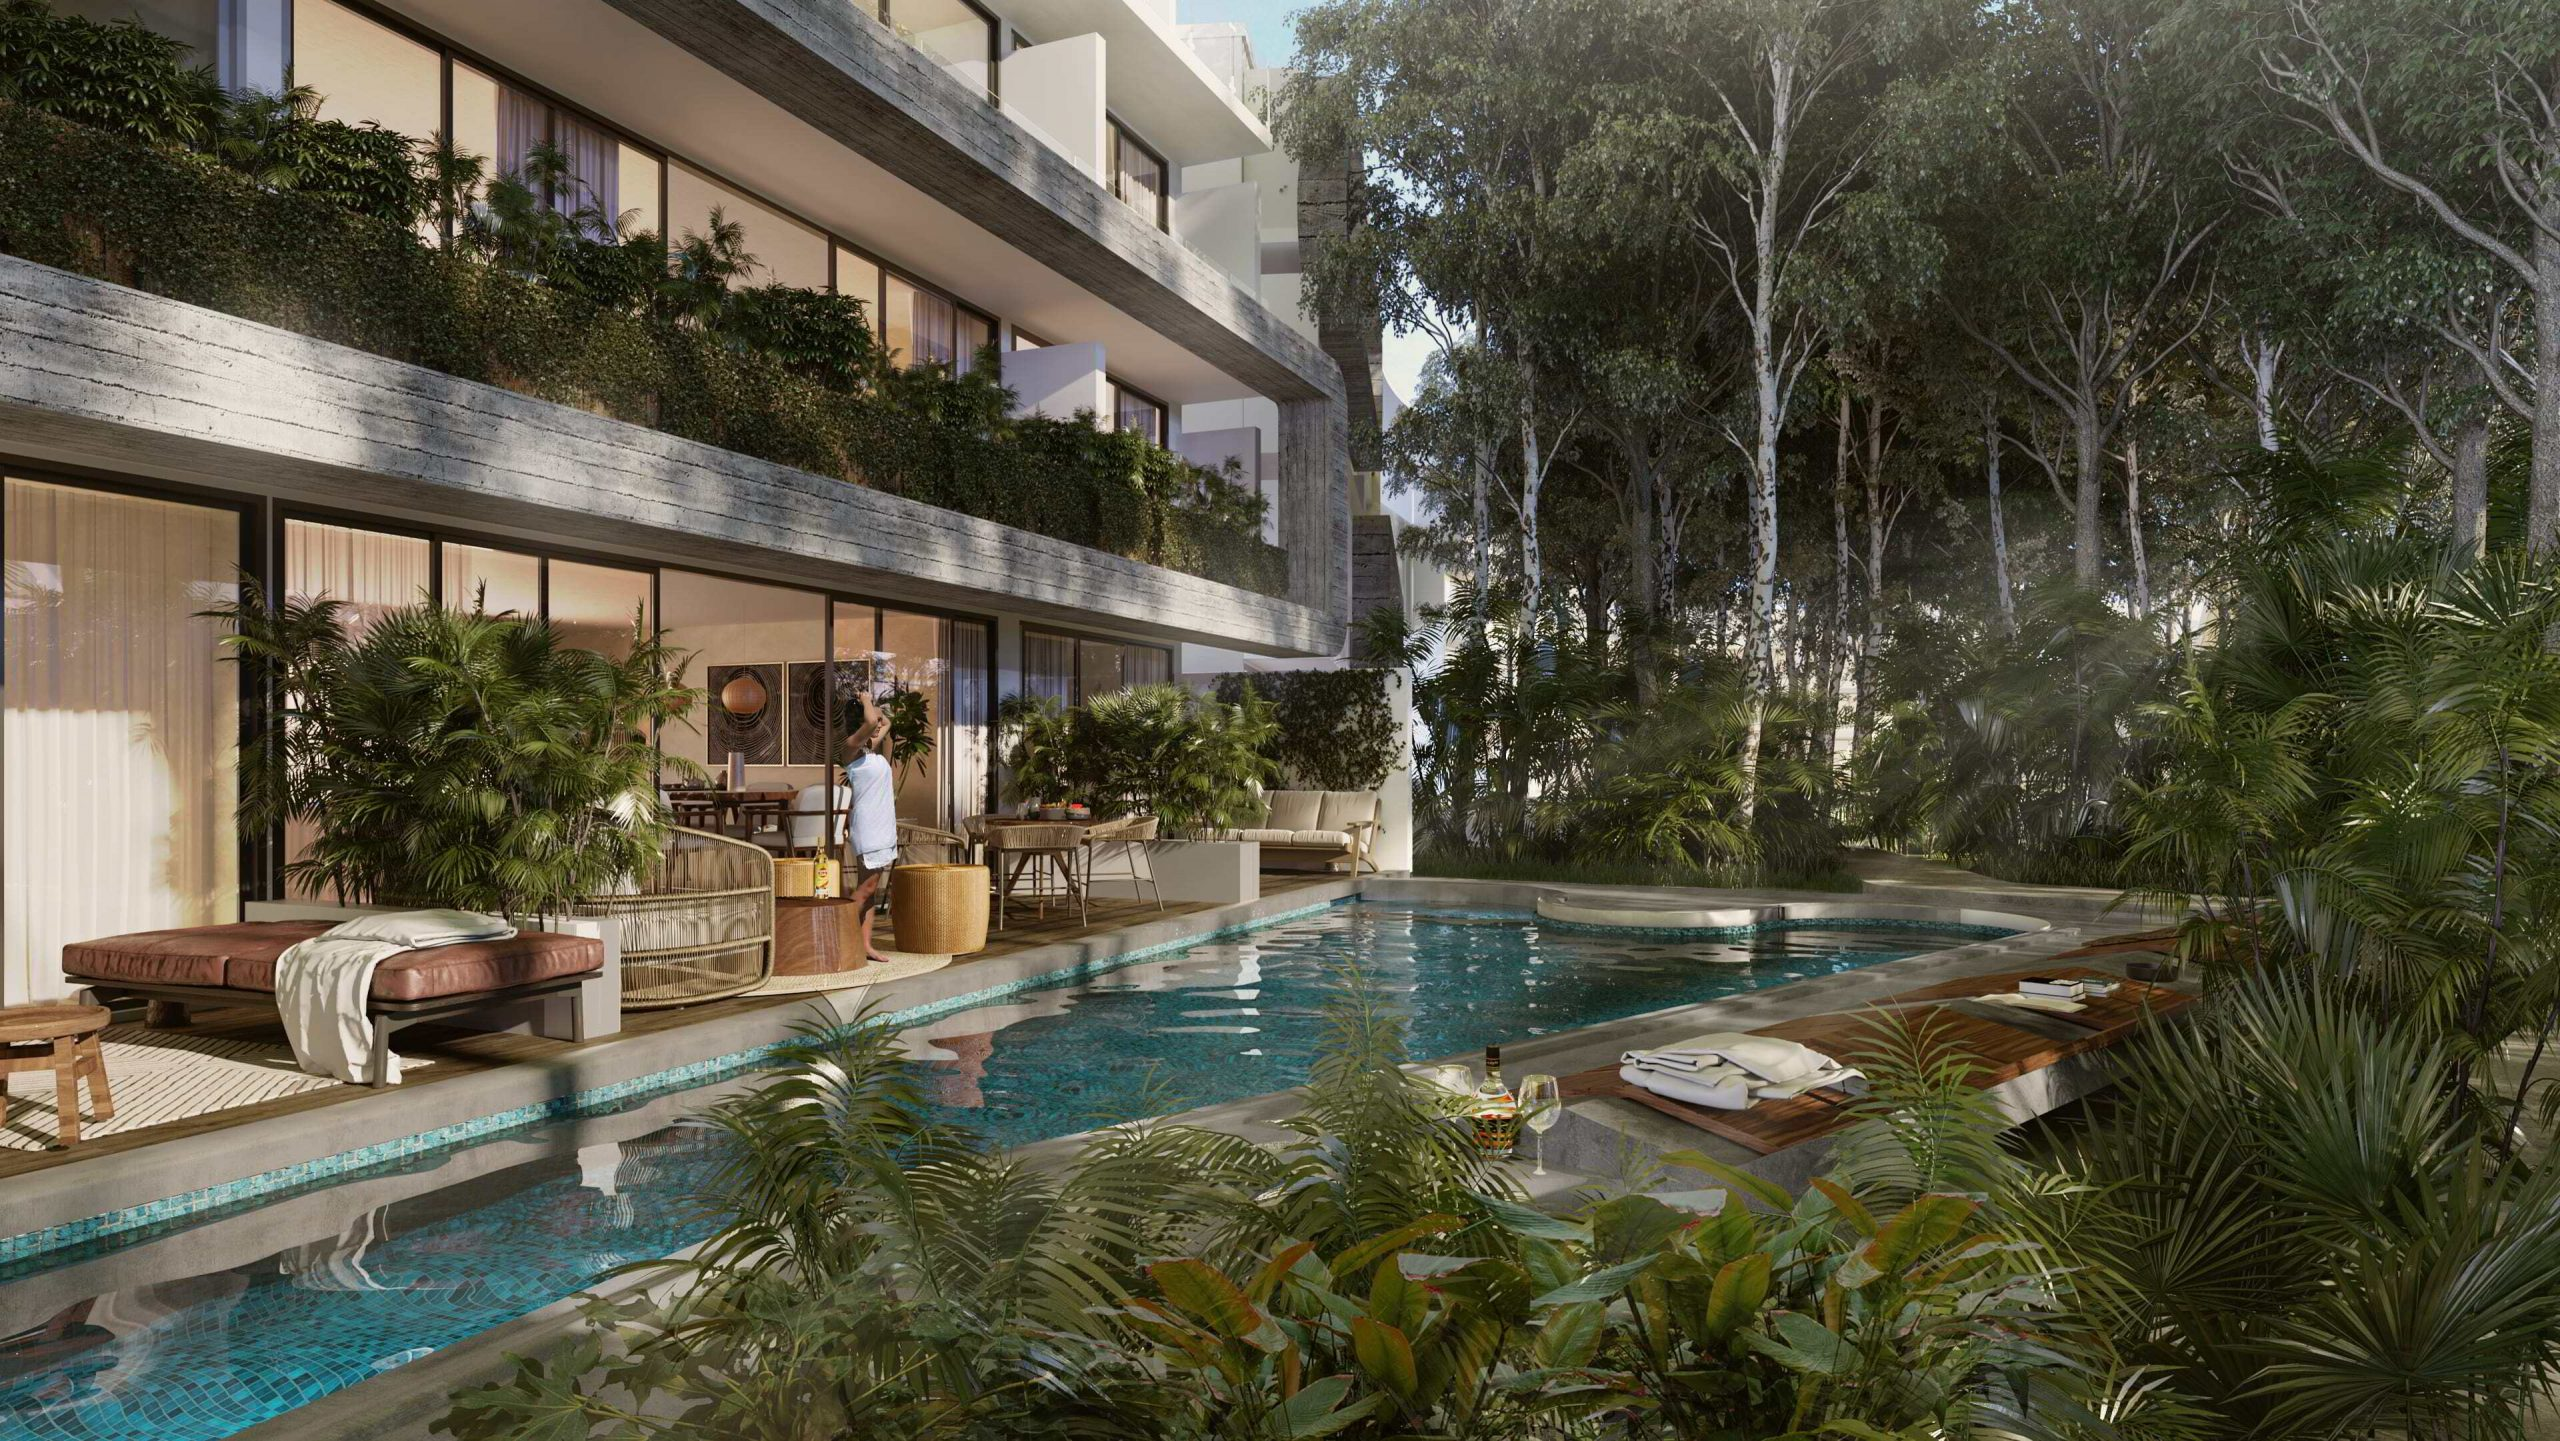 Luxurious properties in the Mayan Riviera